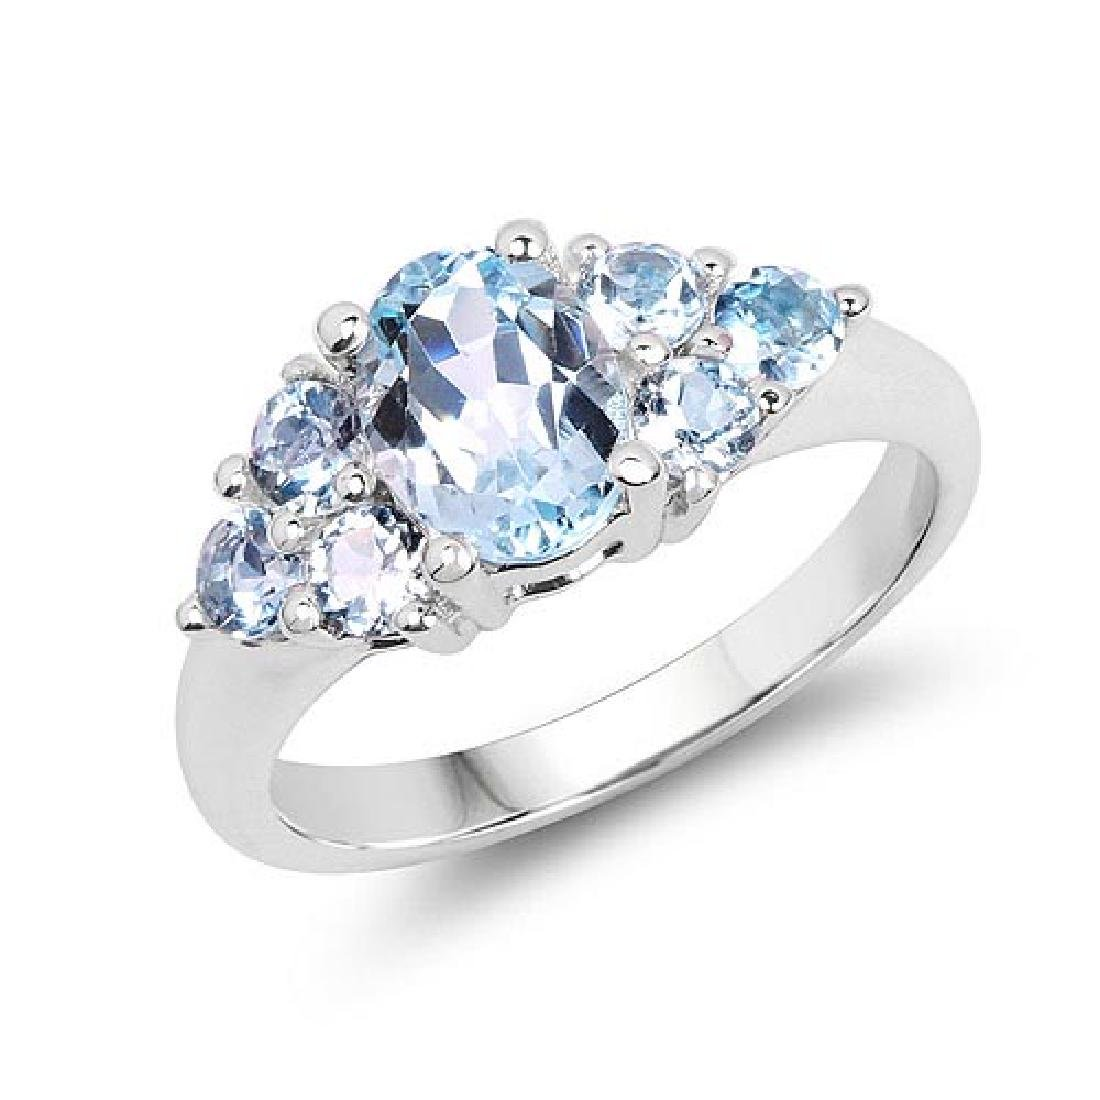 2.32 Carat Genuine Blue Topaz .925 Sterling Silver Ring